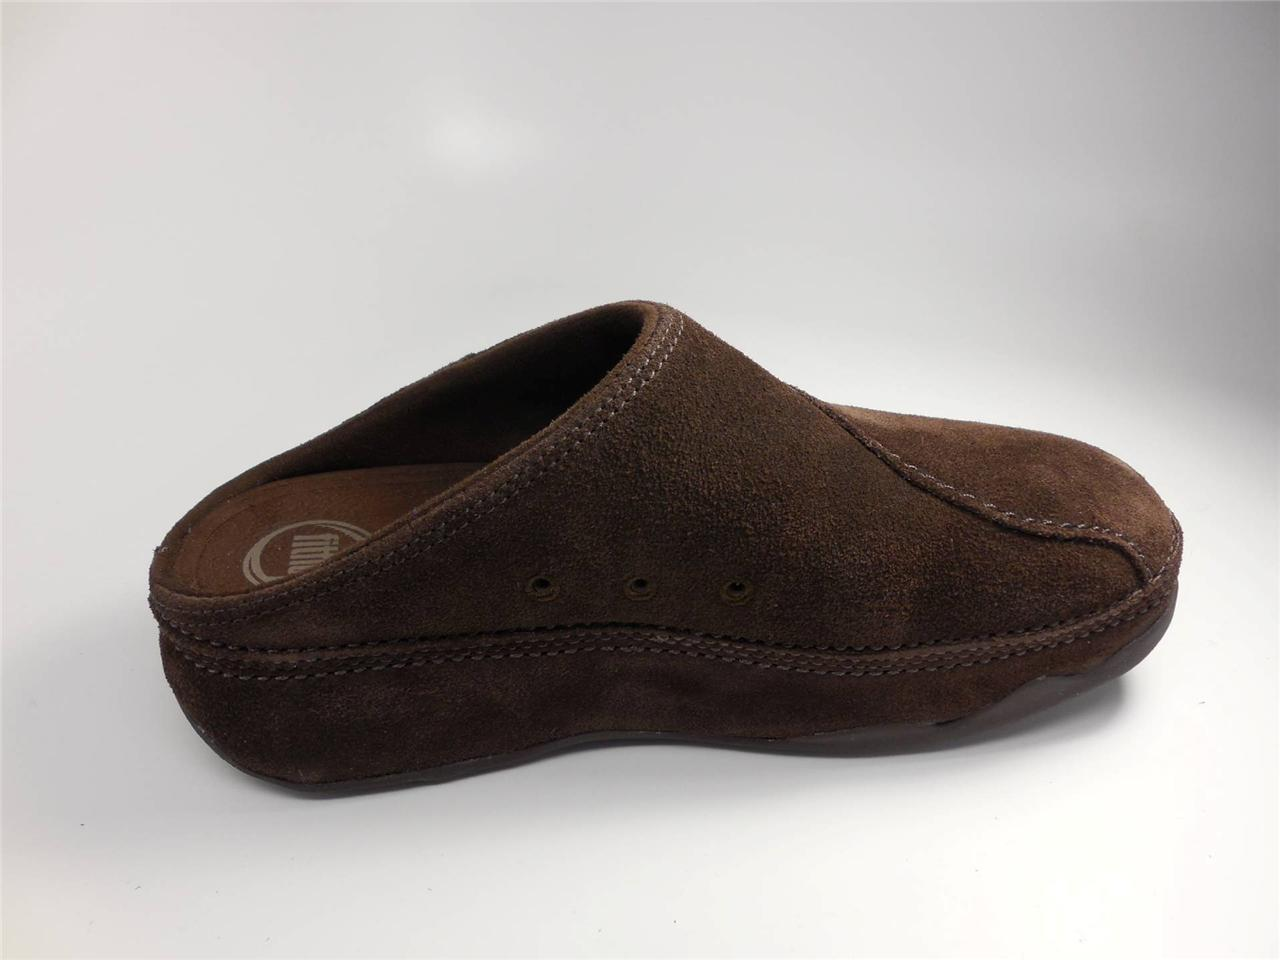 Fitflop Gogh Suede Women Suede Mules Clogs Shoes New | EBay